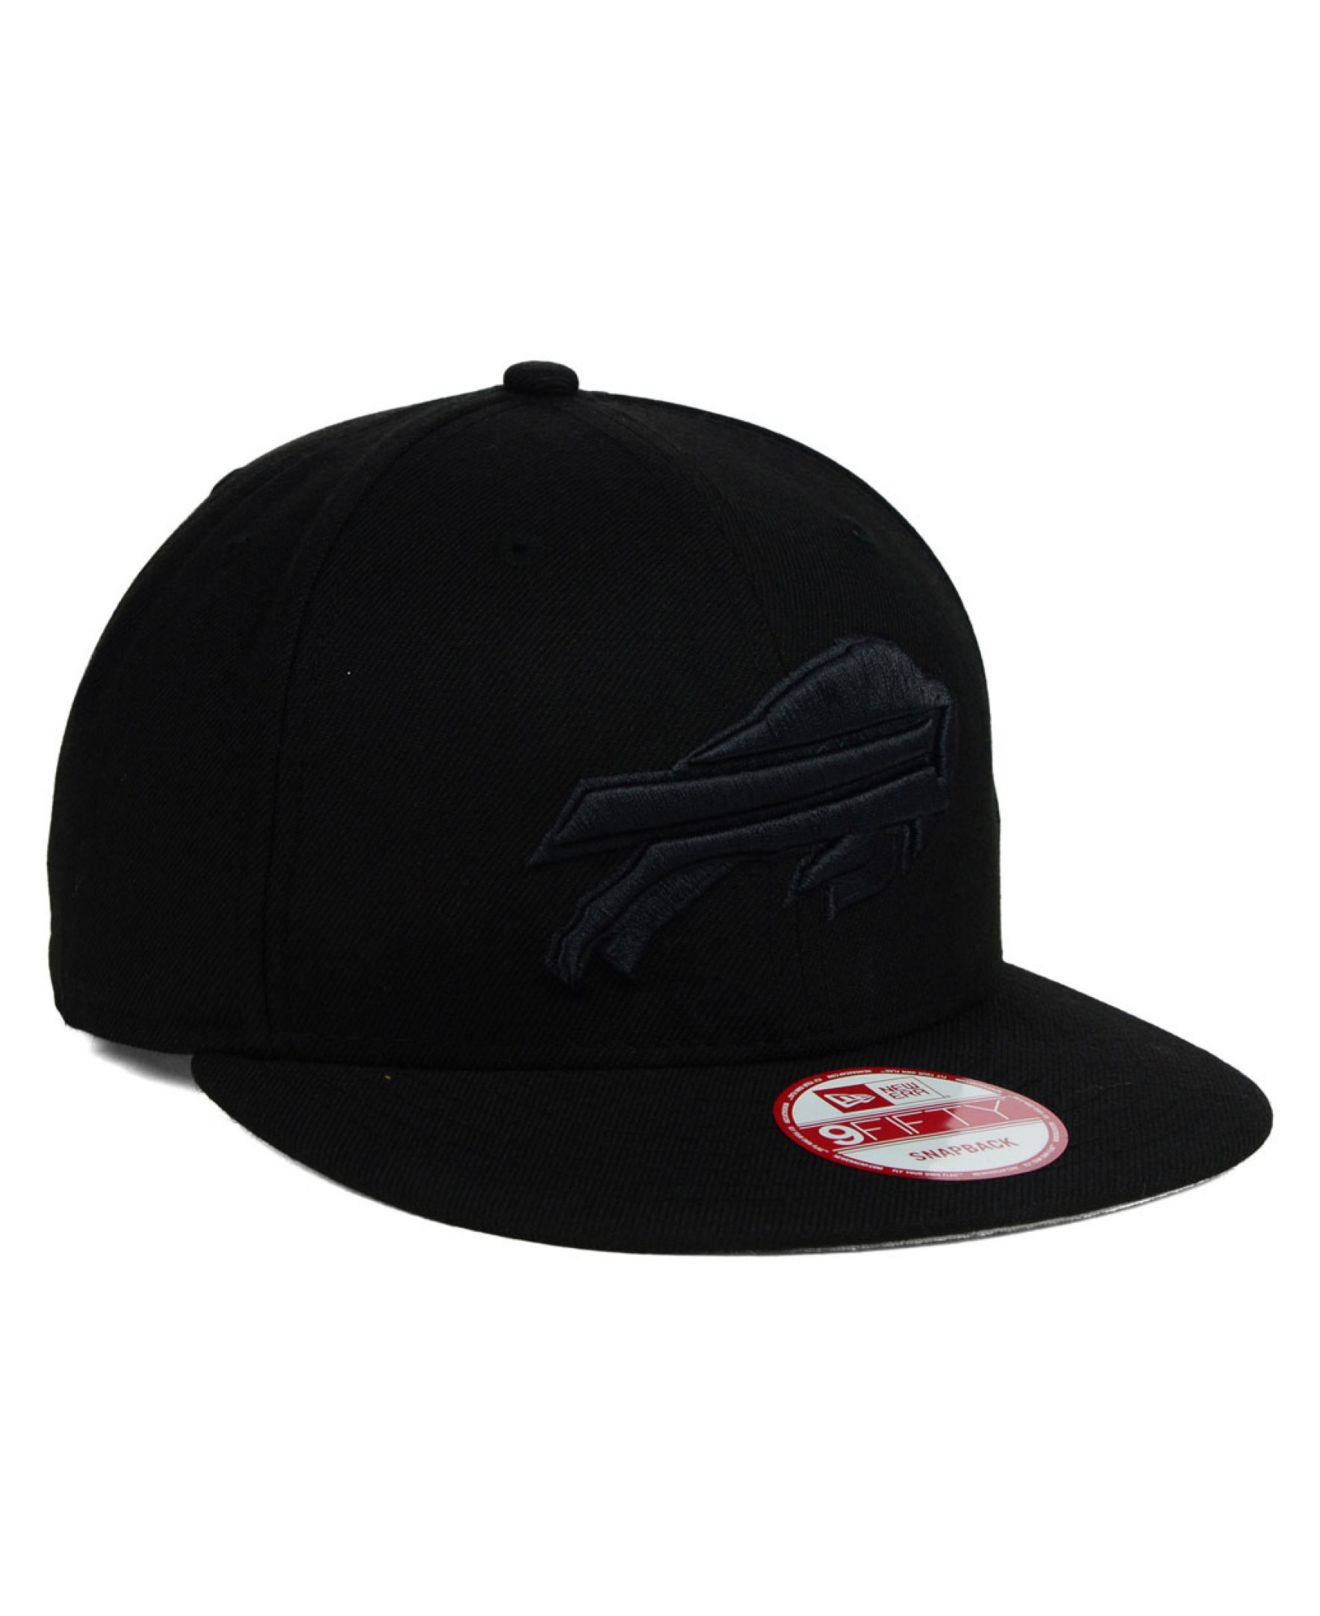 42822e0e0 sweden all black buffalo bills hat 4547a 2fe68